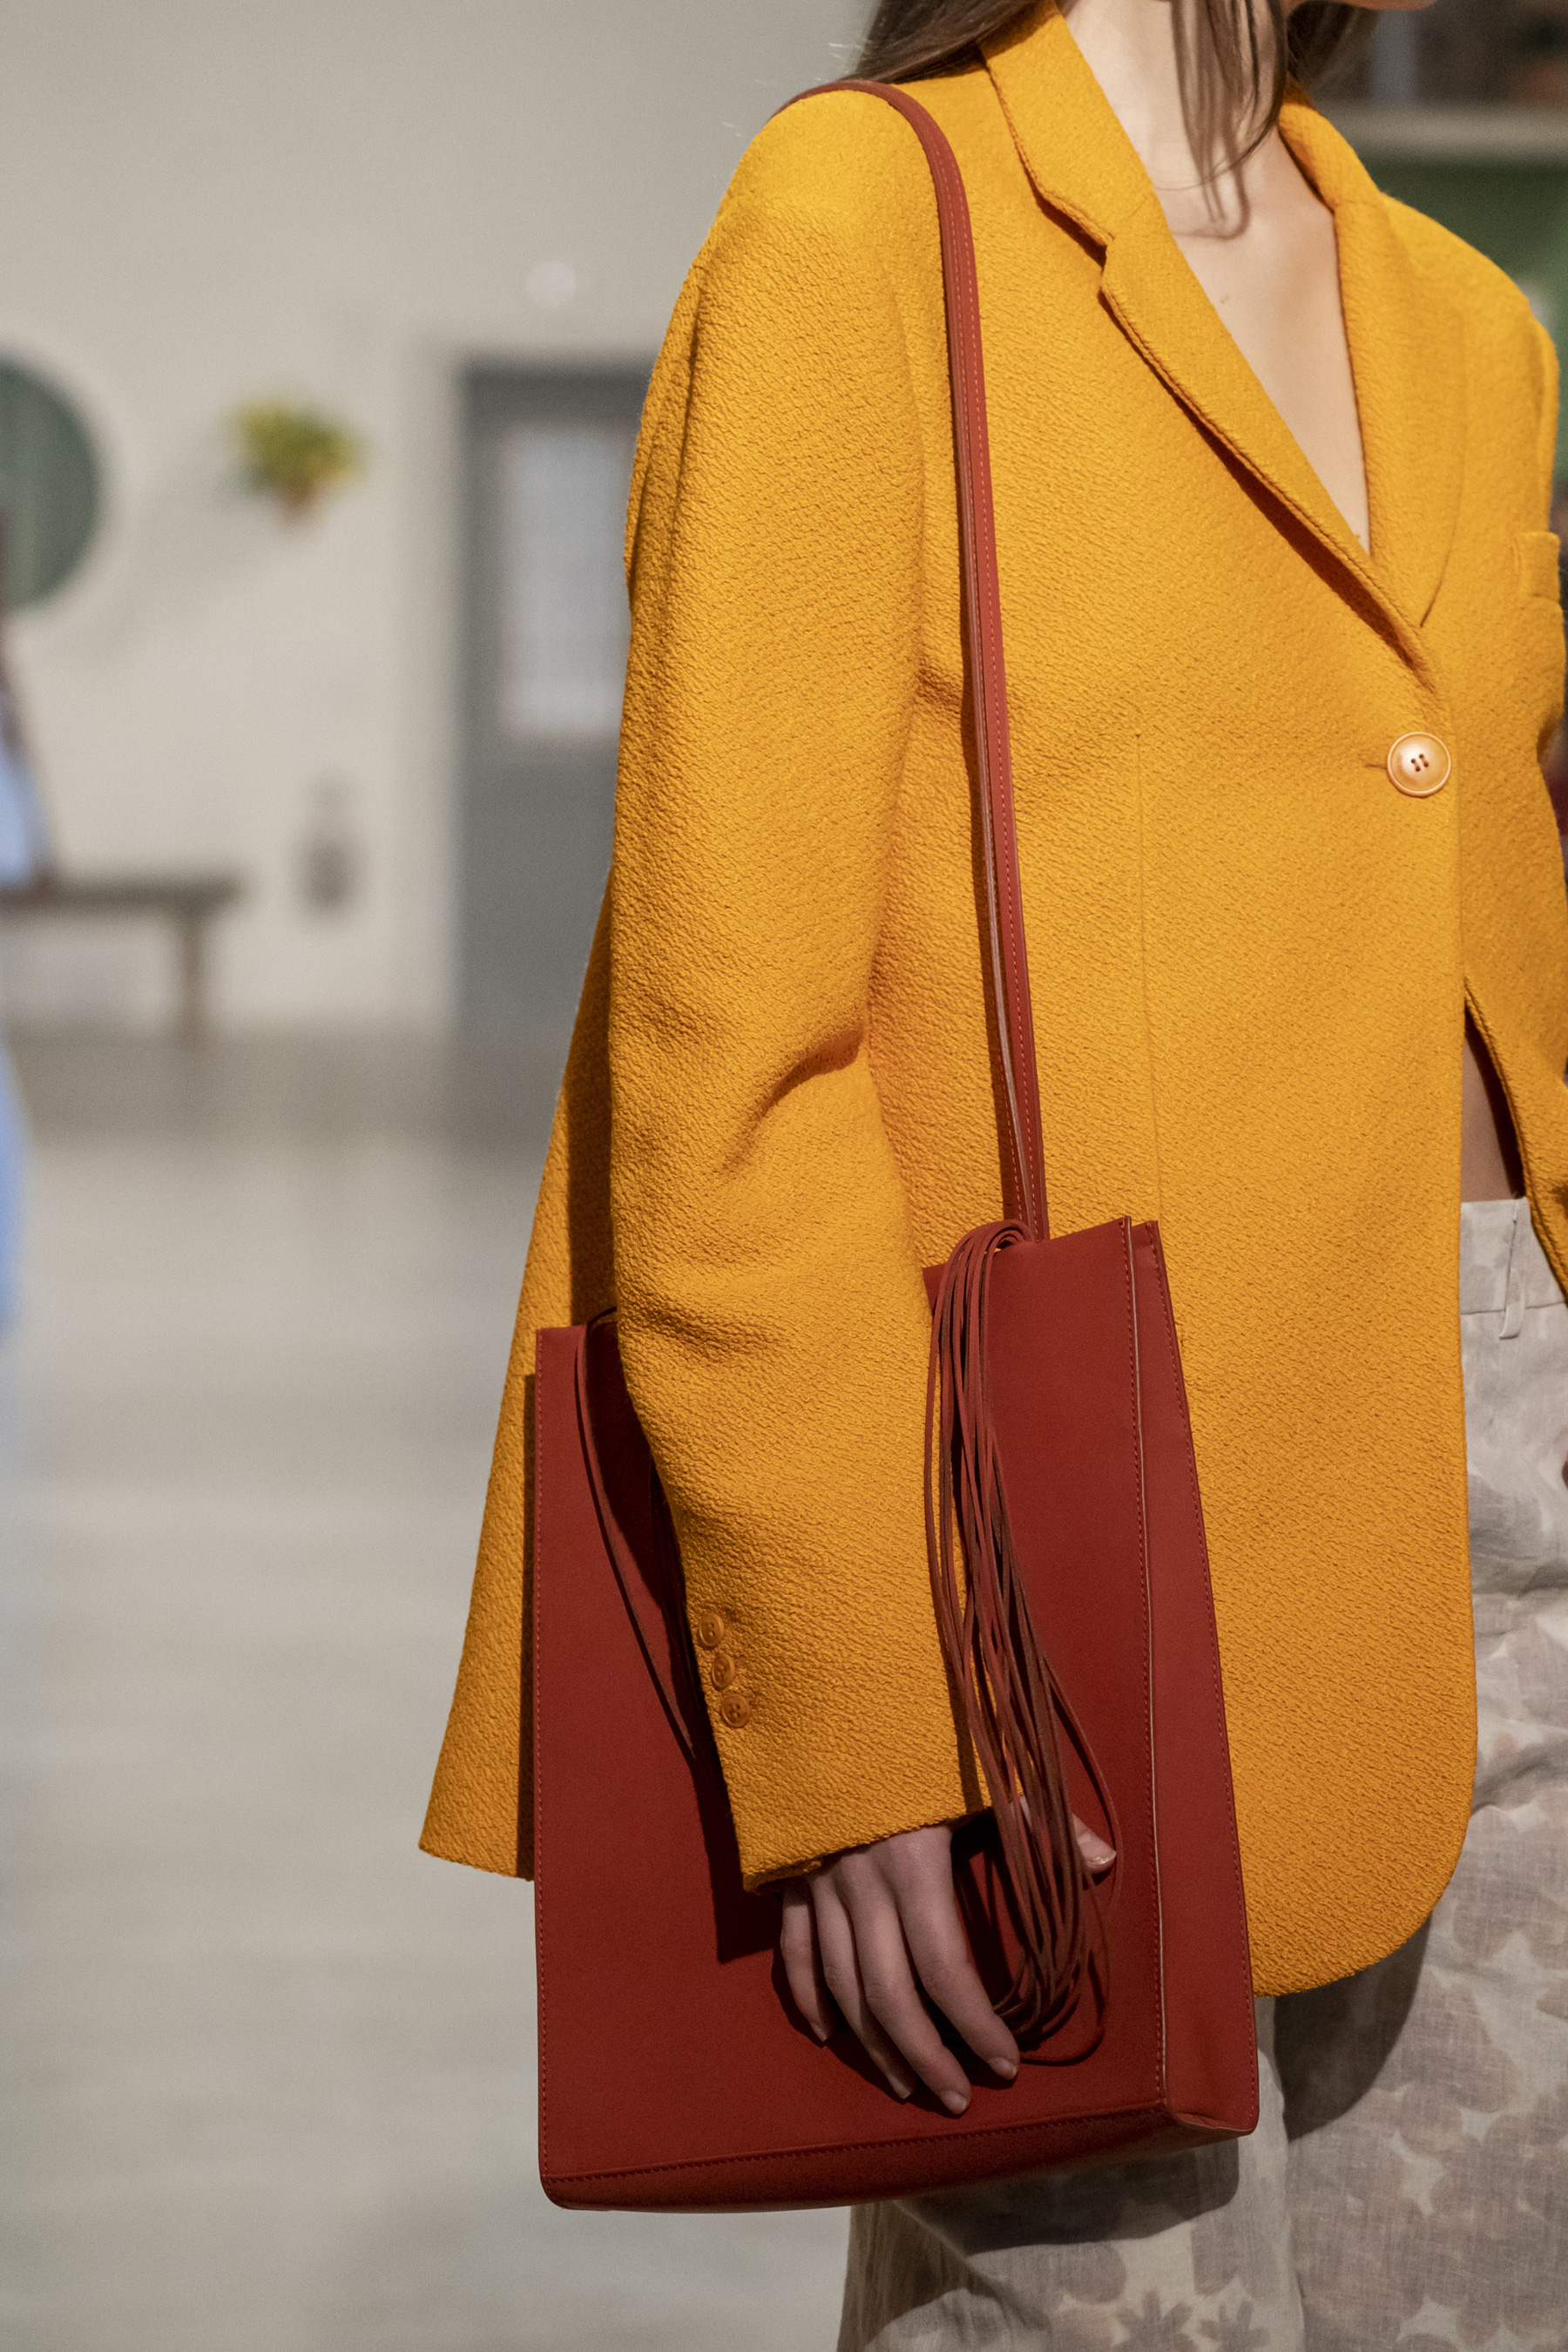 Jacquemus Fall 2019 Fashion Show Details